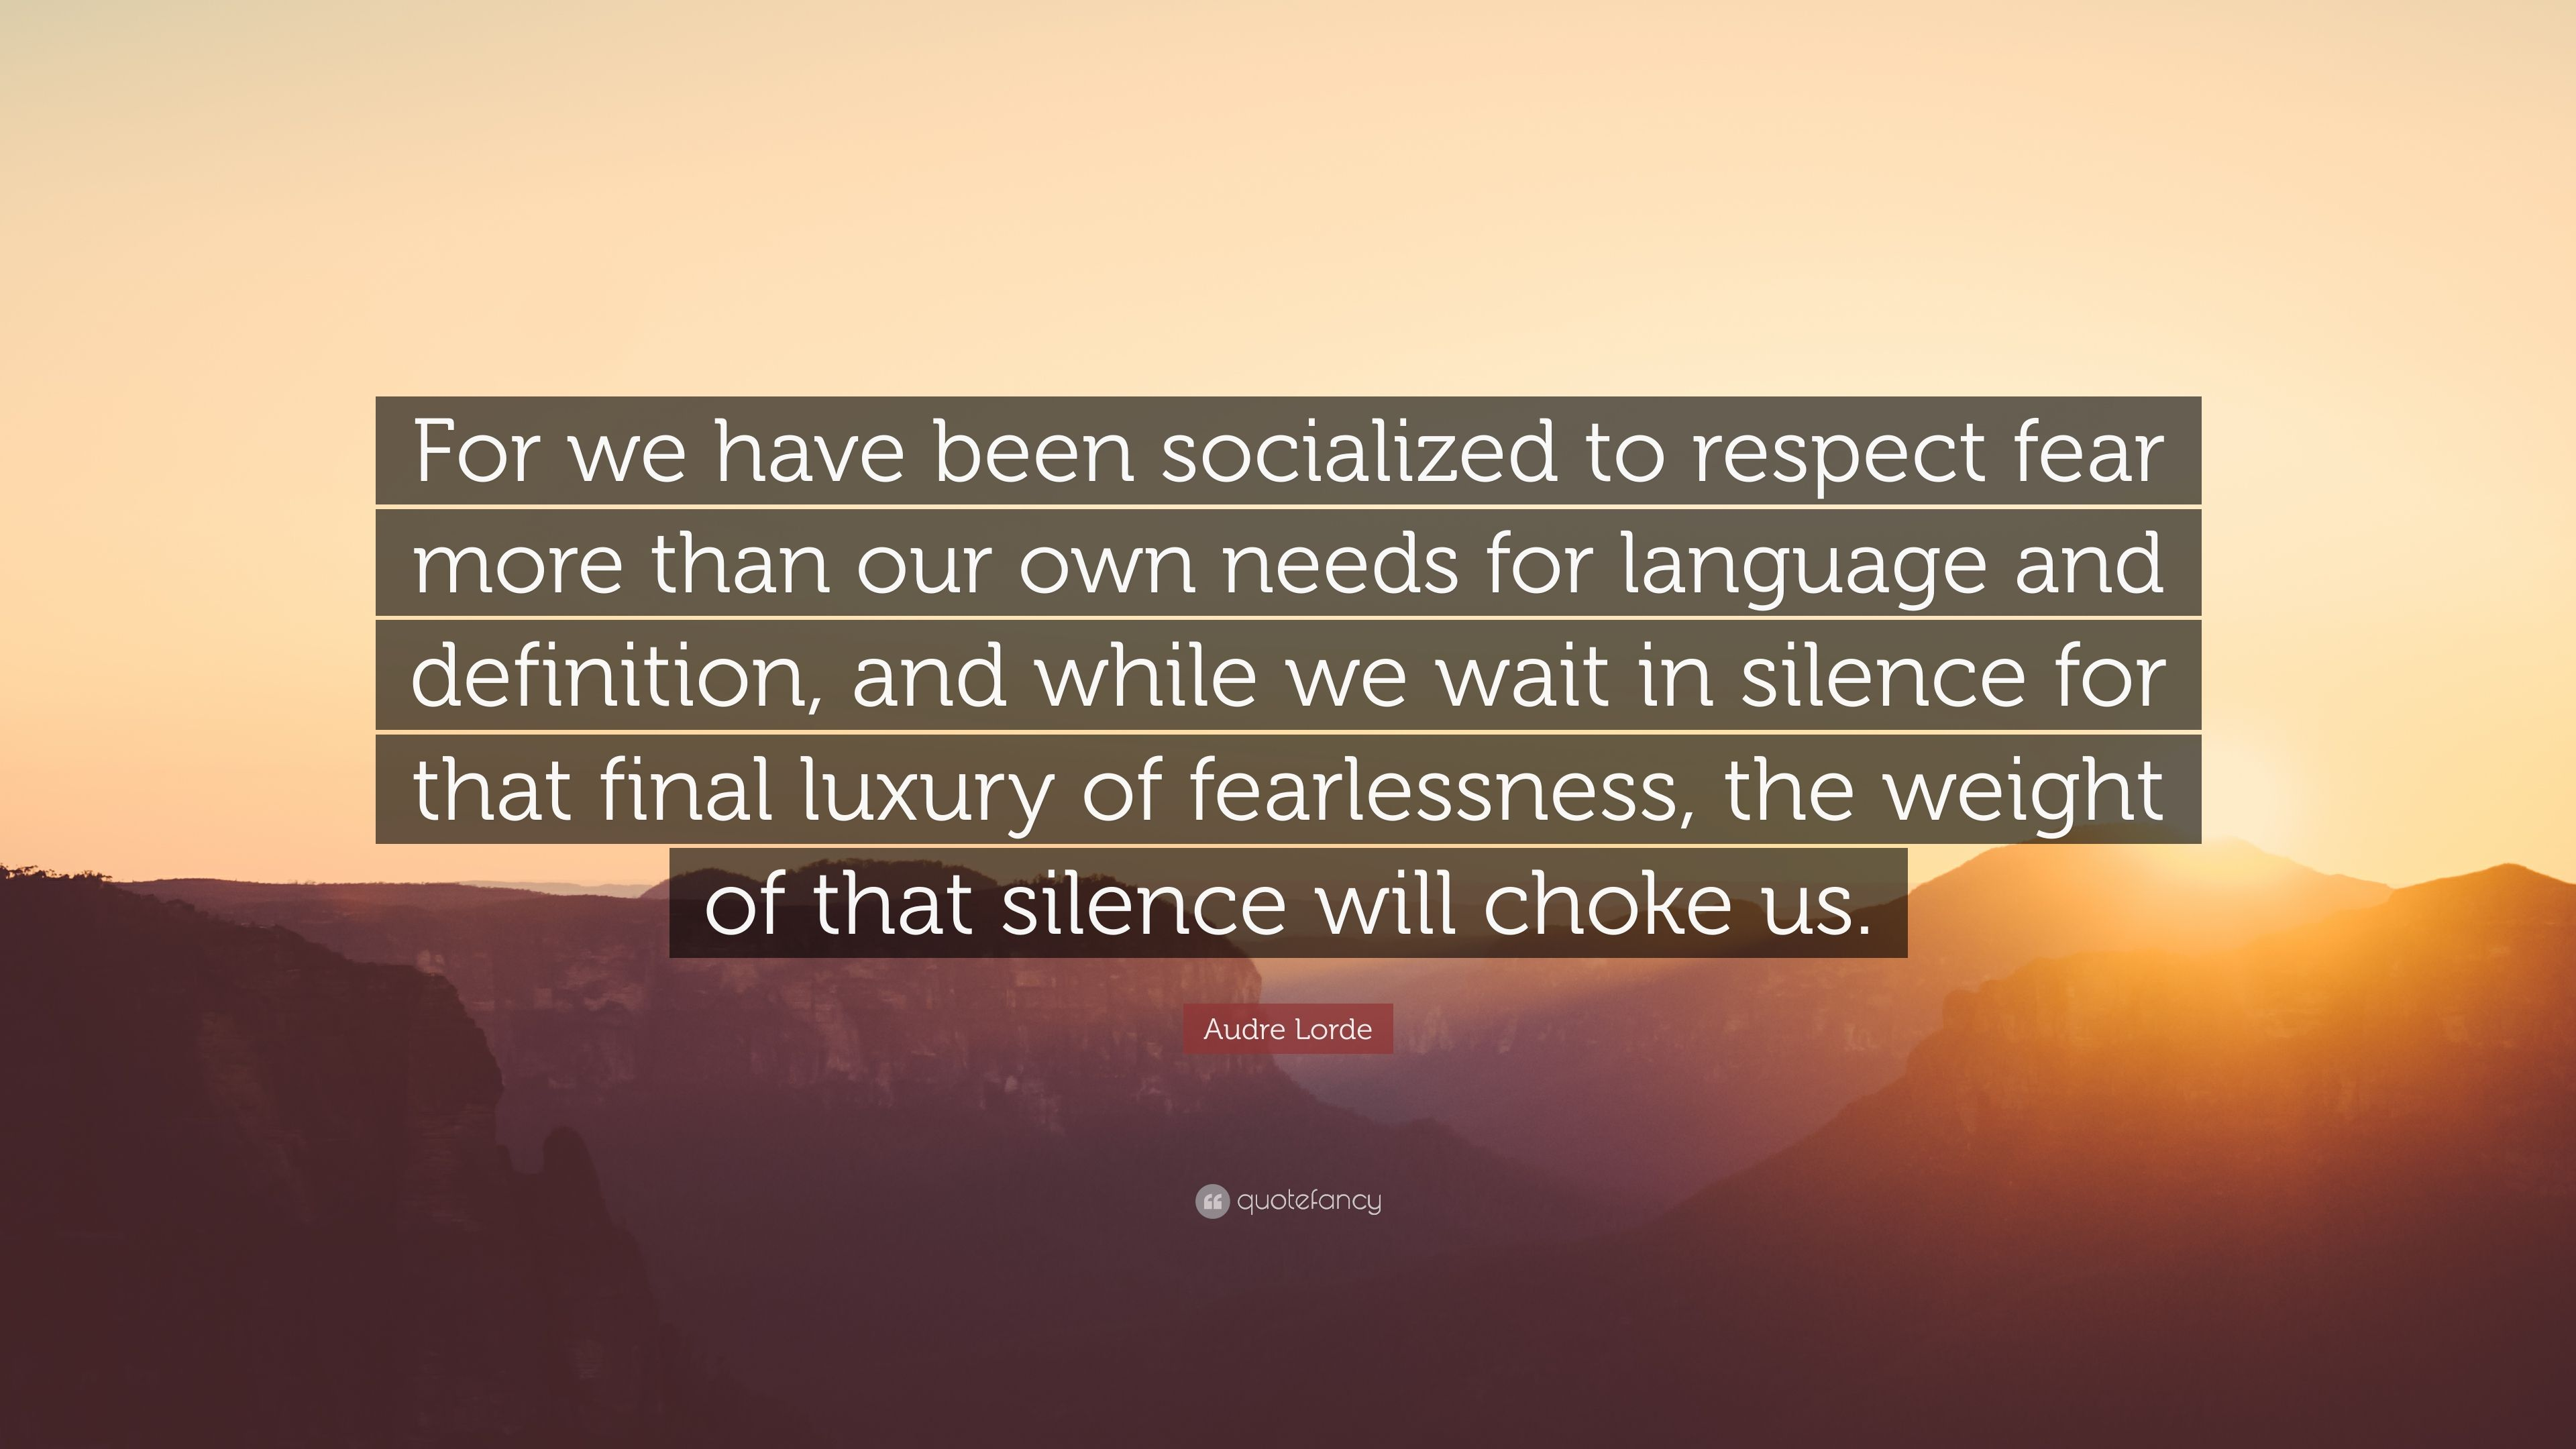 audre lorde quote for we have been socialized to respect fear more